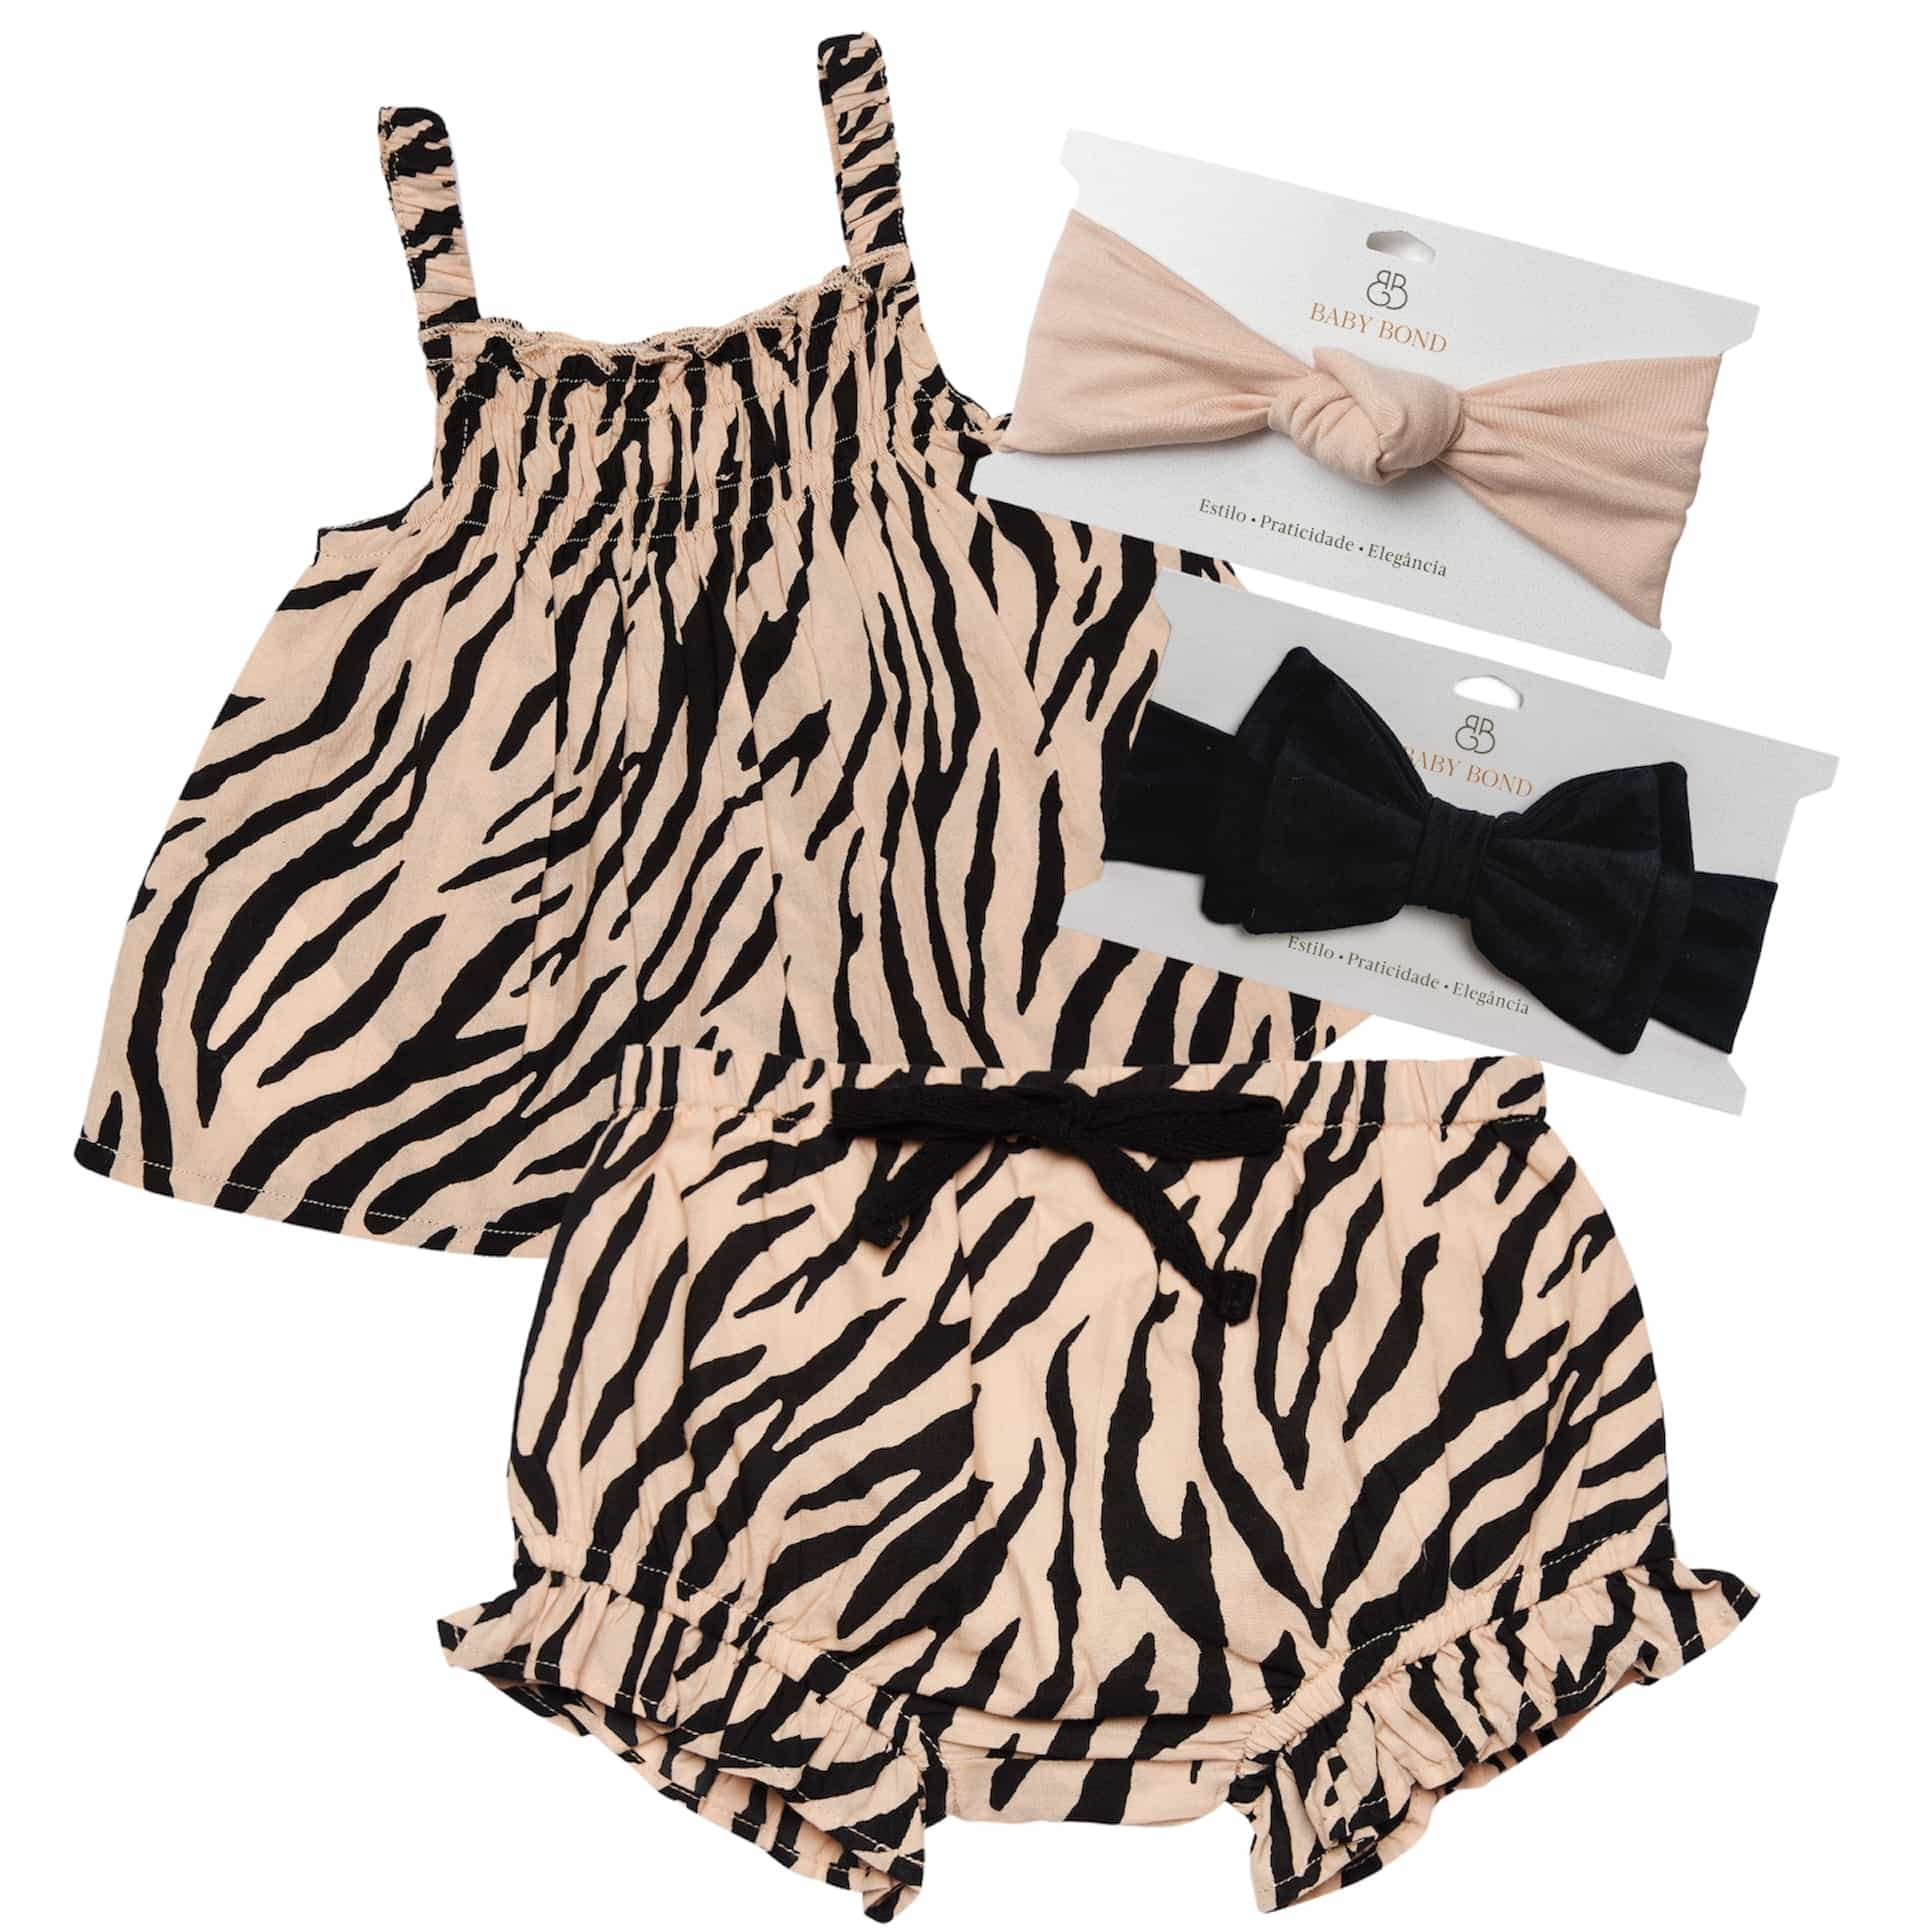 KIT CONJUNTO ANIMAL PRINT + 2 FAIXAS